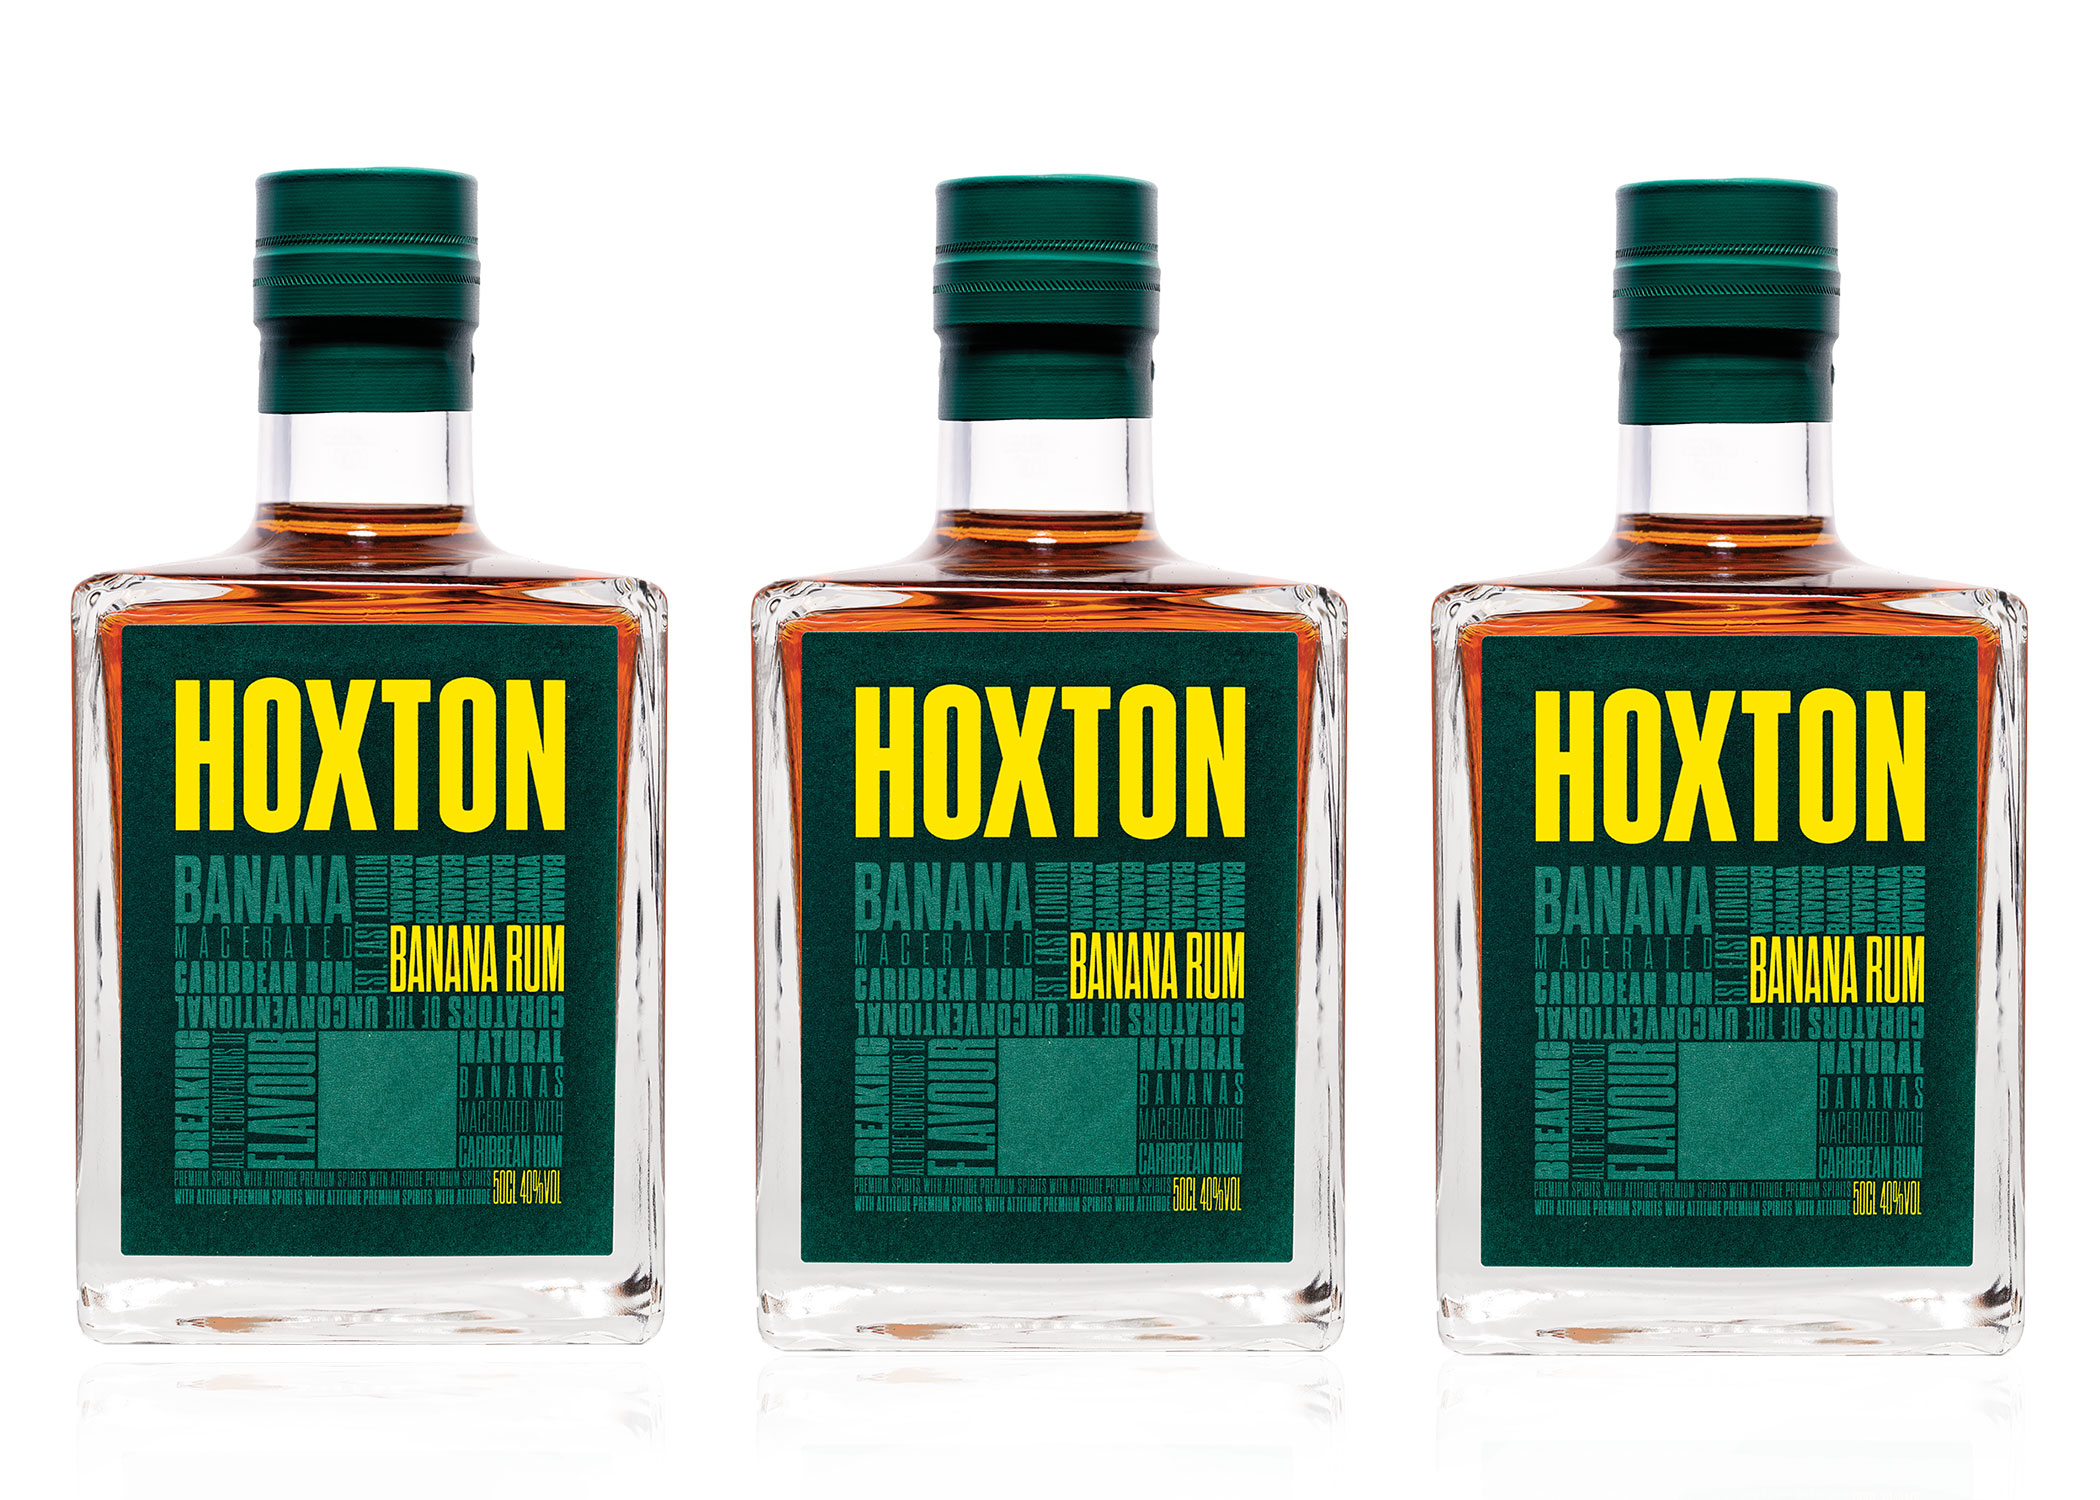 HOXTON BANANA RUM - Hoxton Spirits are proud to announce the launch of Hoxton Banana Rum. Inspired by island living and created with lots of love and passion through an extensive process which involves fresh and dried banana being macerated for five weeks with the finest hand-selected Caribbean rums.